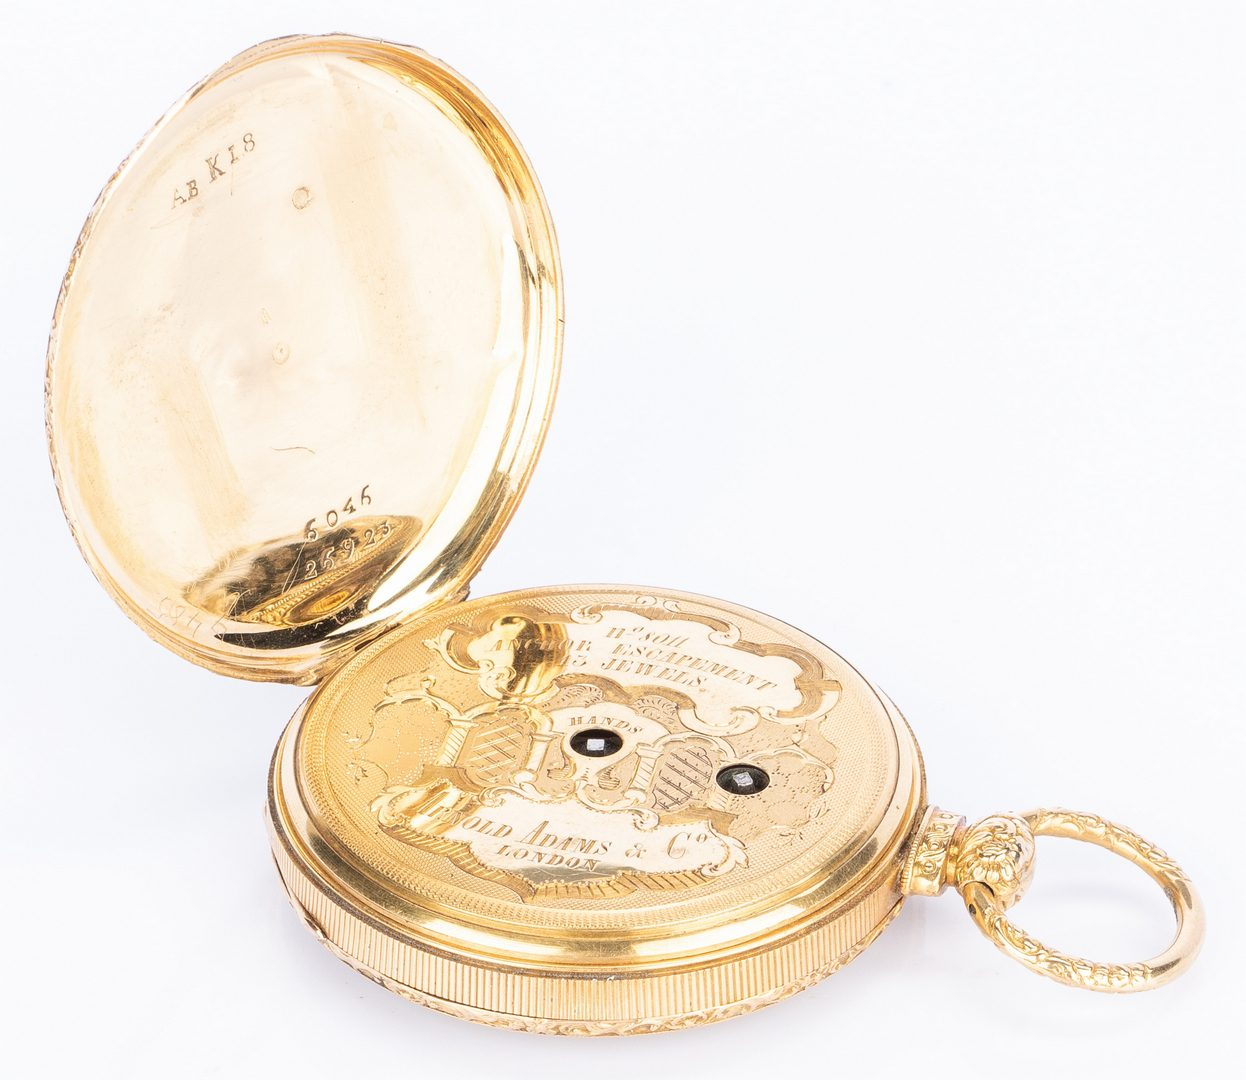 Lot 395: 18k Arnold Adams Pocket Watch